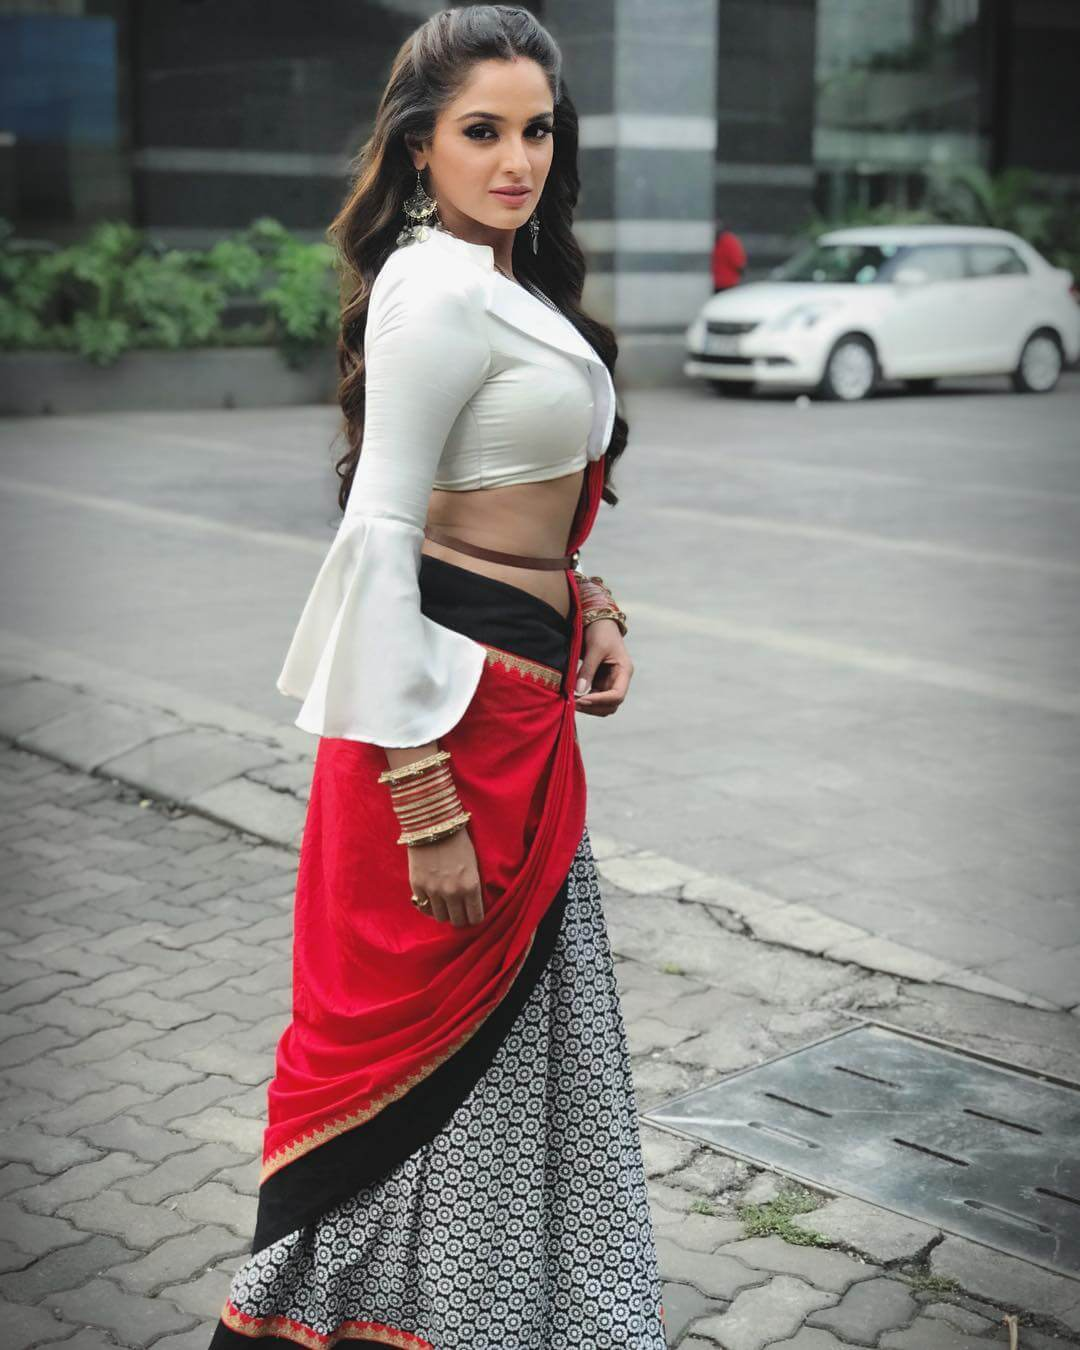 asmita sood in white shirt and red colored saree